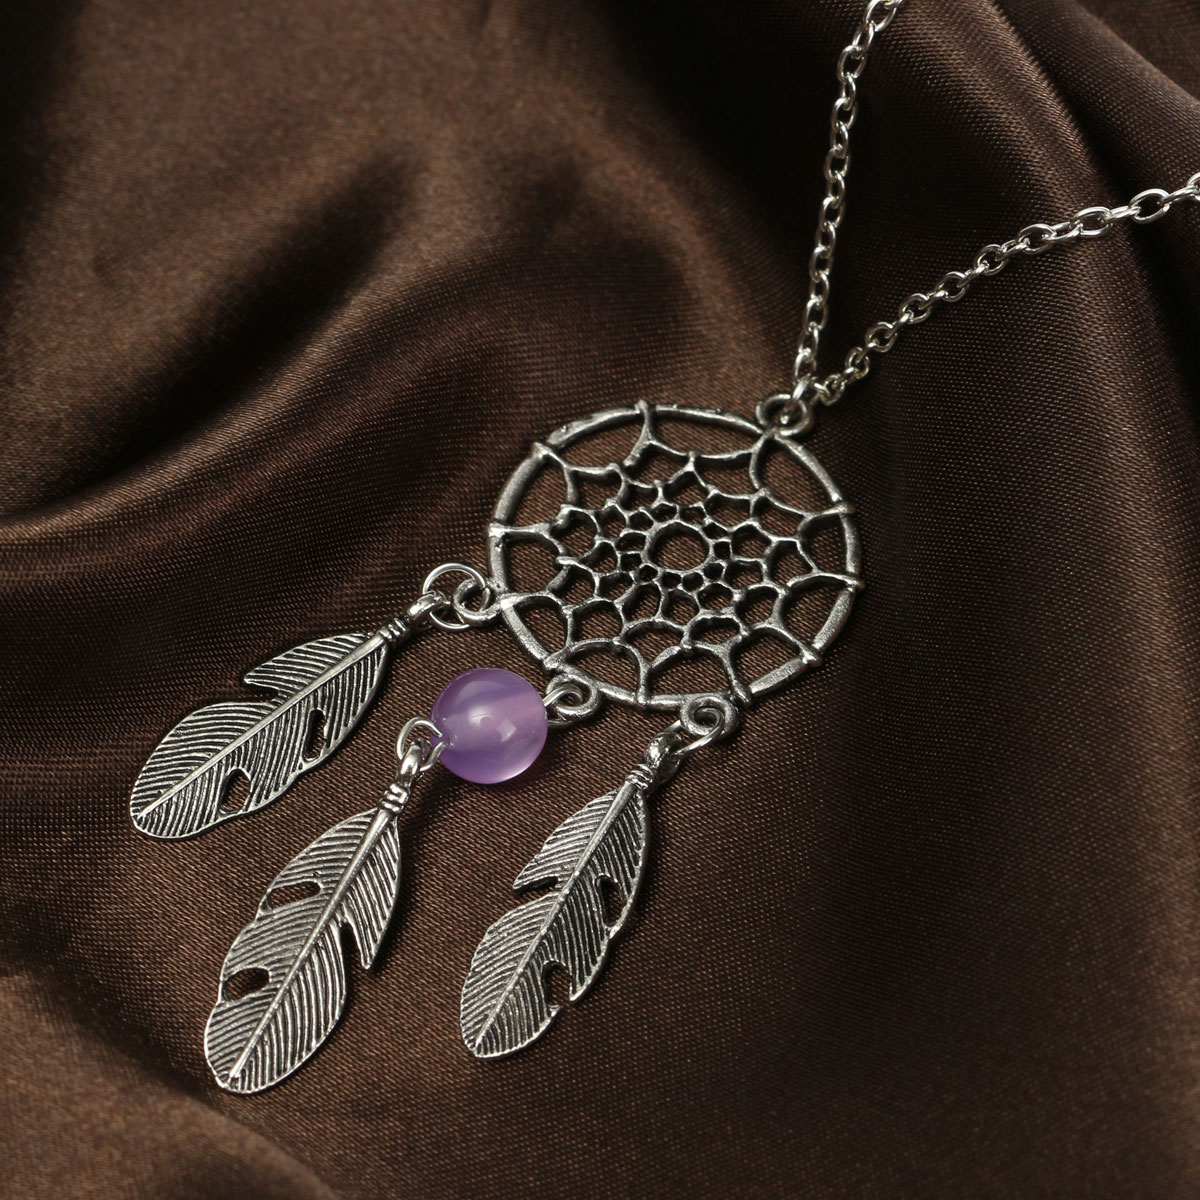 Retro Vintage Dreamcatcher Sweater Women Alloy Necklace Jewelry